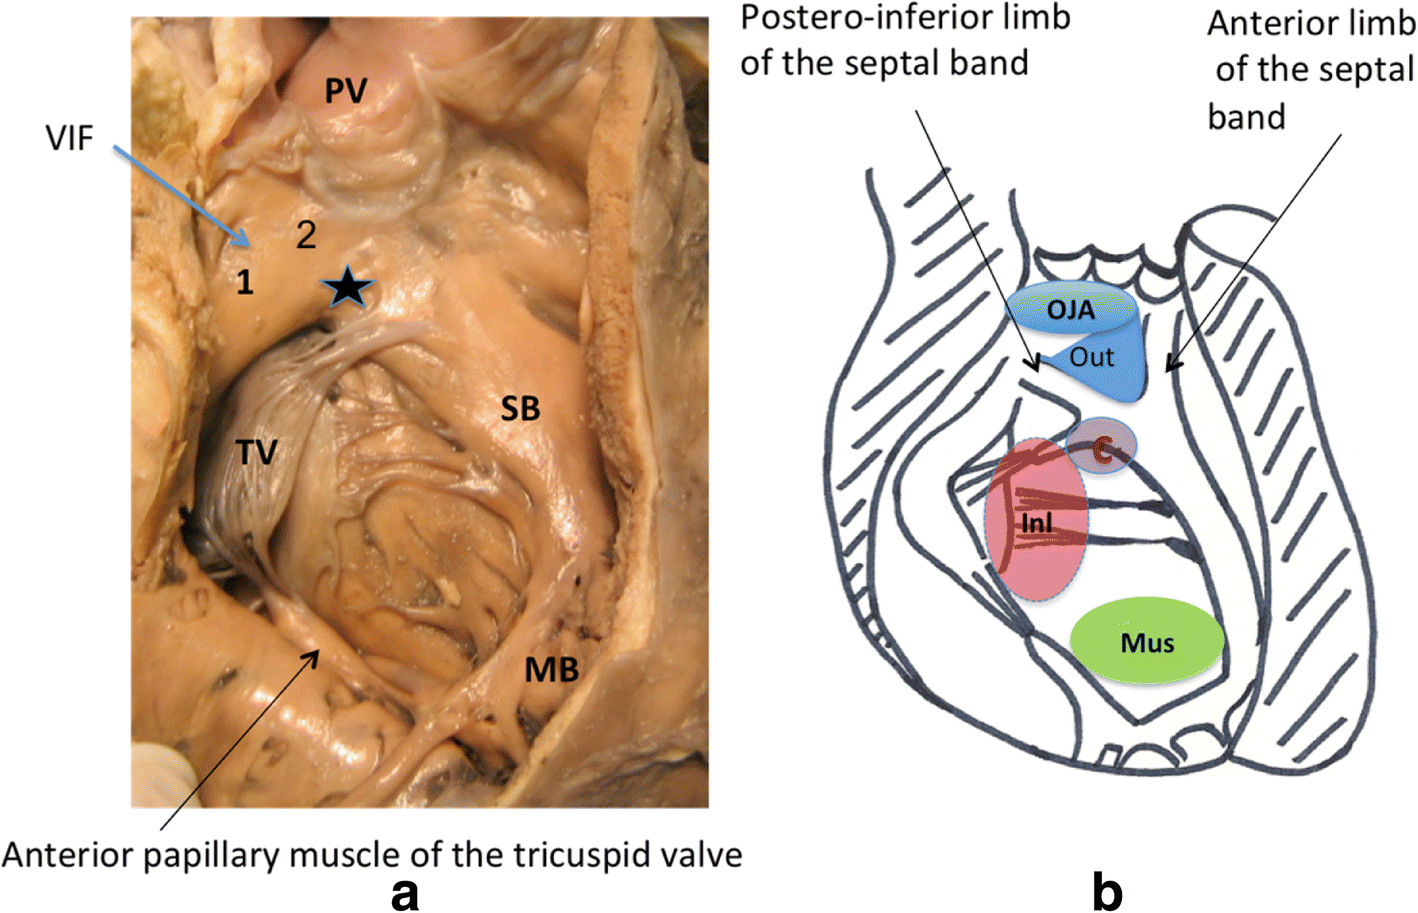 Anatomy of the ventricular septal defect in congenital heart defects ...